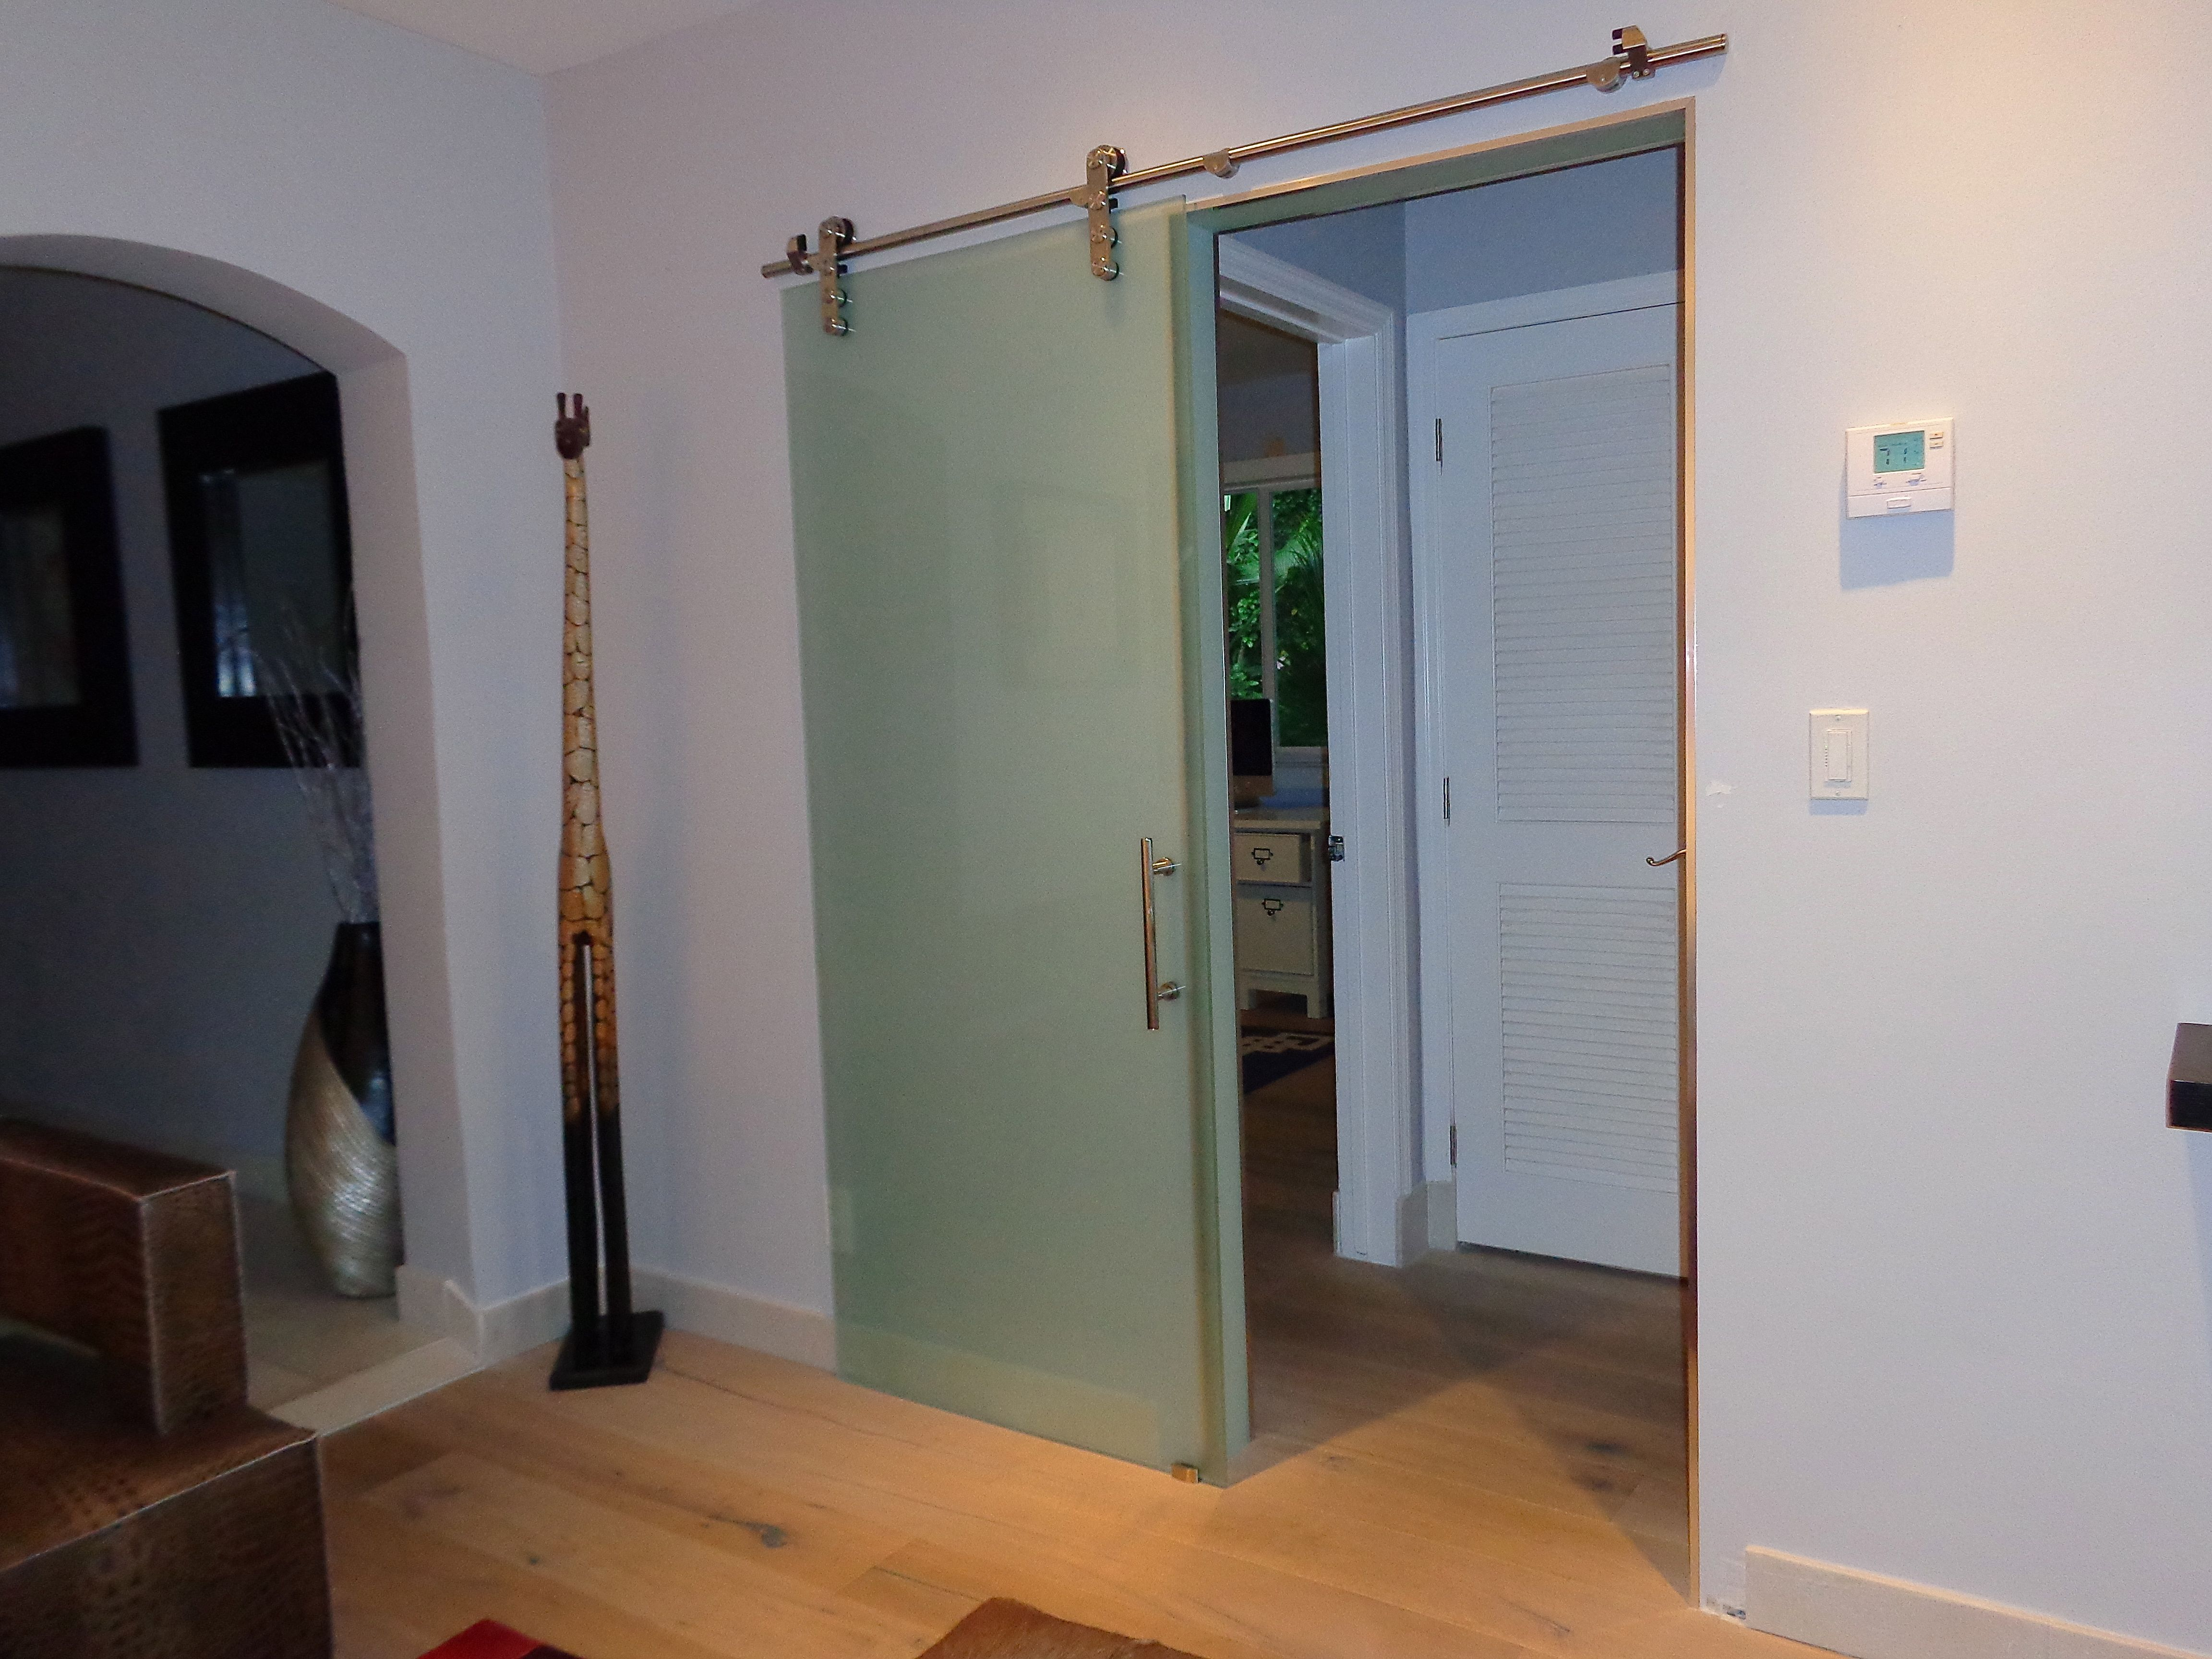 Genial Laguna Series Sliding Glass Door System   Available In Single Or Double Door.  Kit Contains